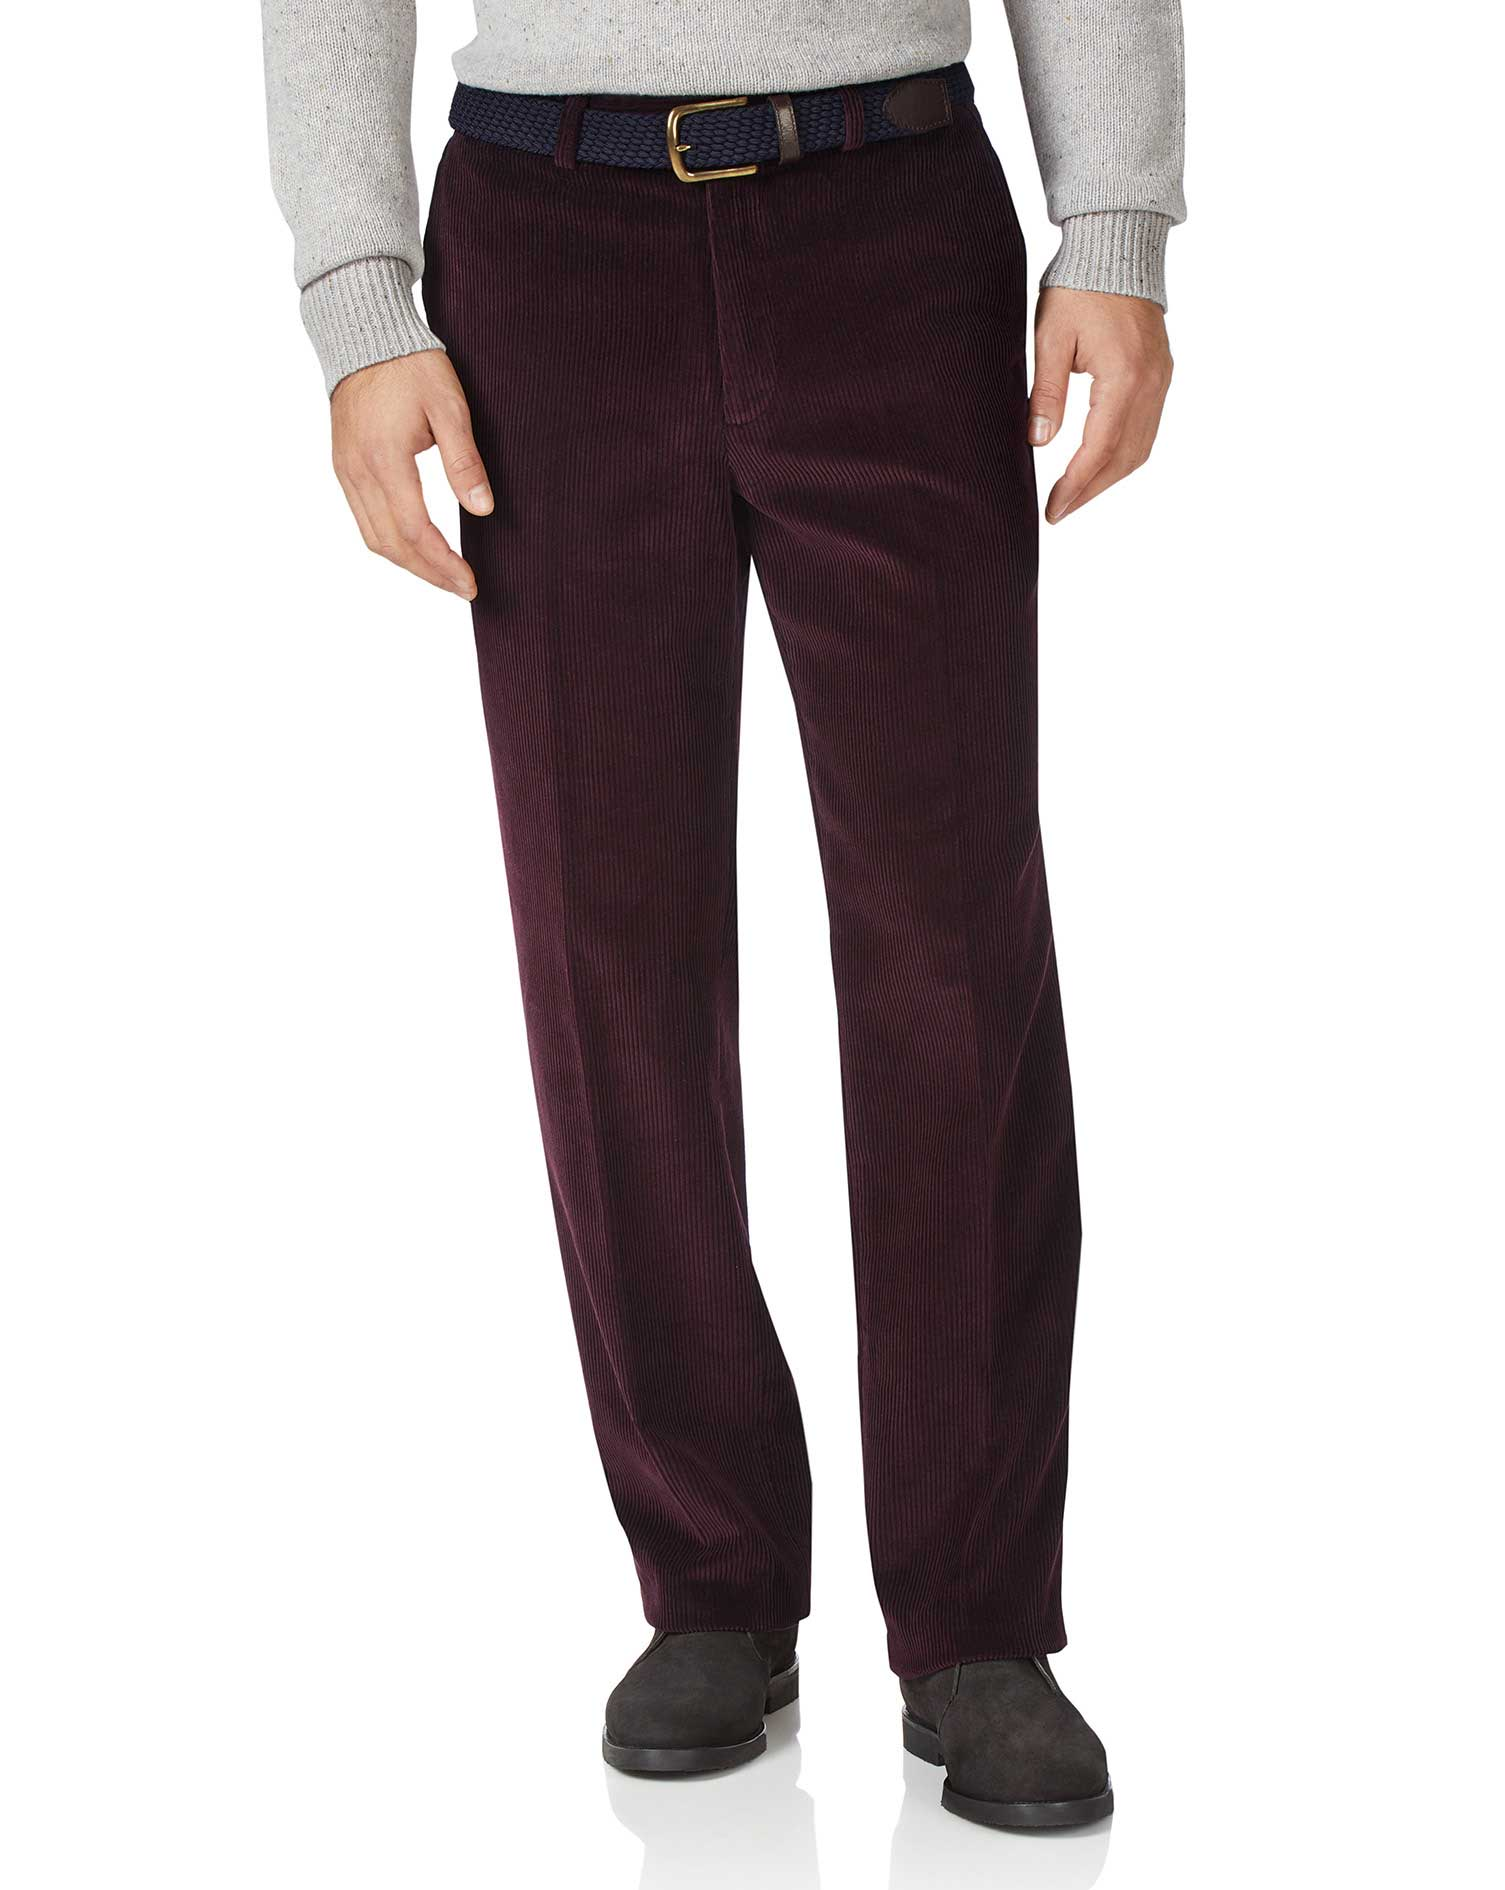 Wine Classic Fit Jumbo Corduroy Trousers Size W34 L34 by Charles Tyrwhitt